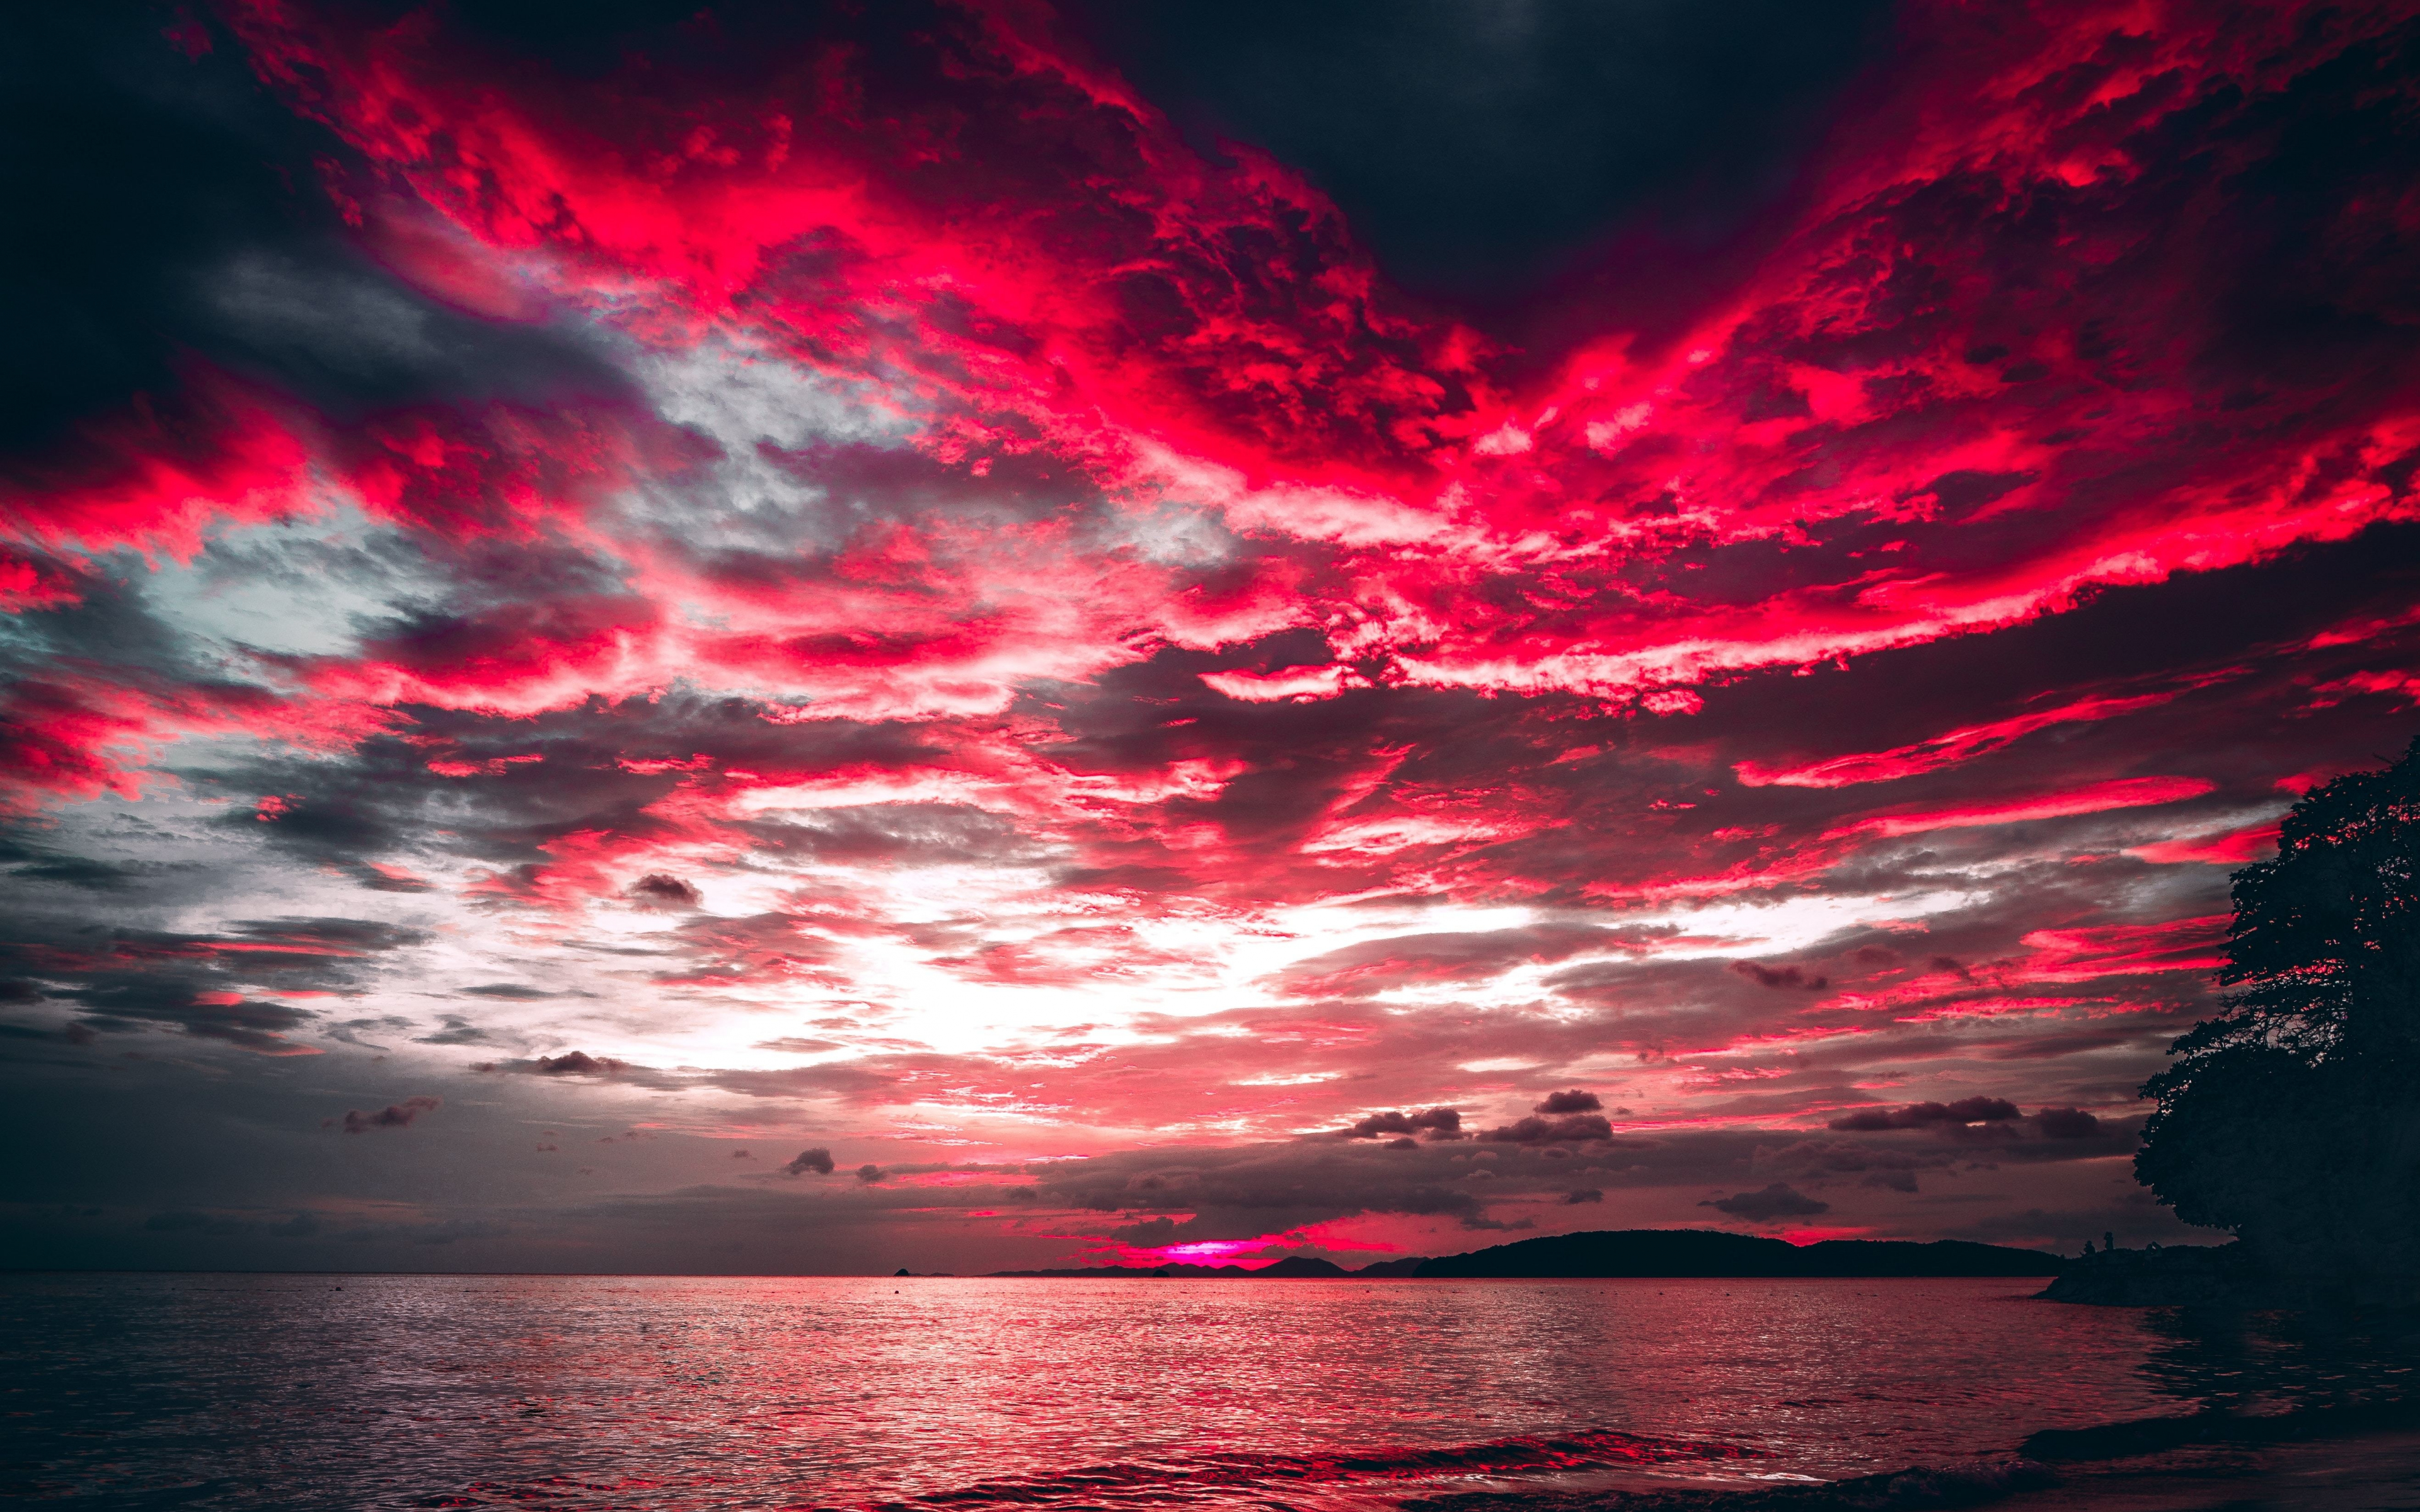 Download 3840x2400 wallpaper sea, sunset, red clouds ...